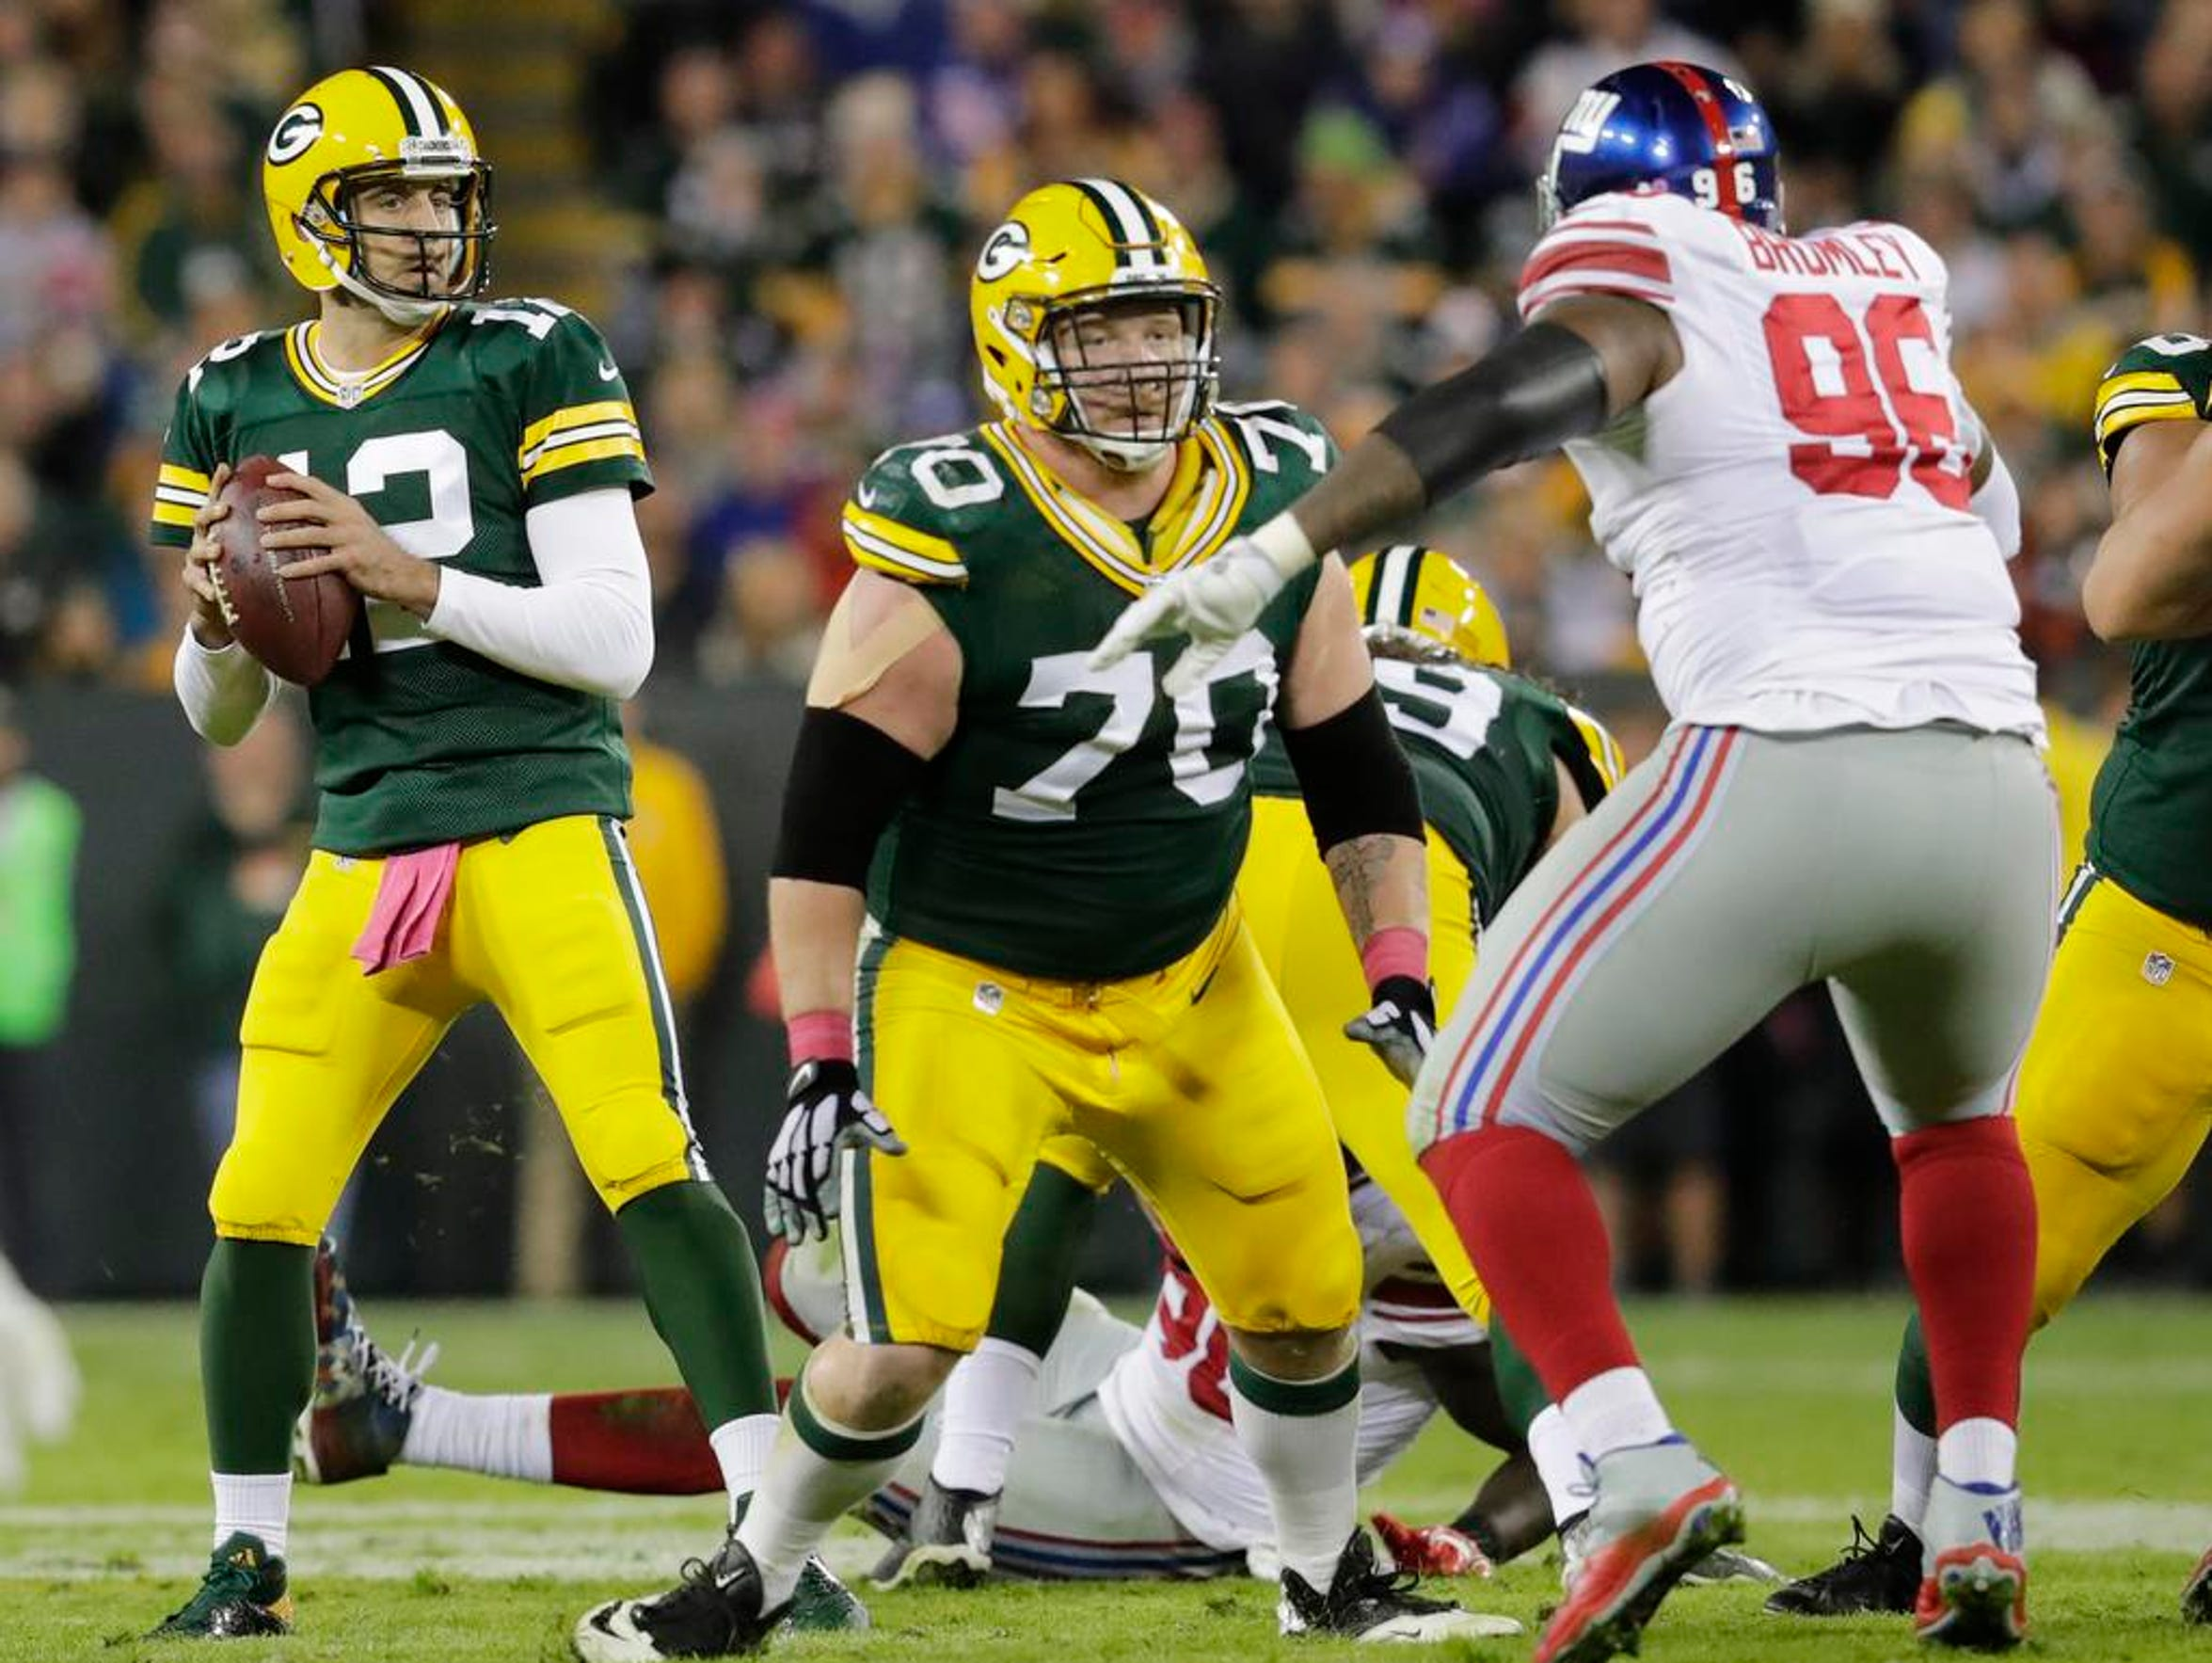 Green Bay Packers quarterback Aaron Rodgers looks to